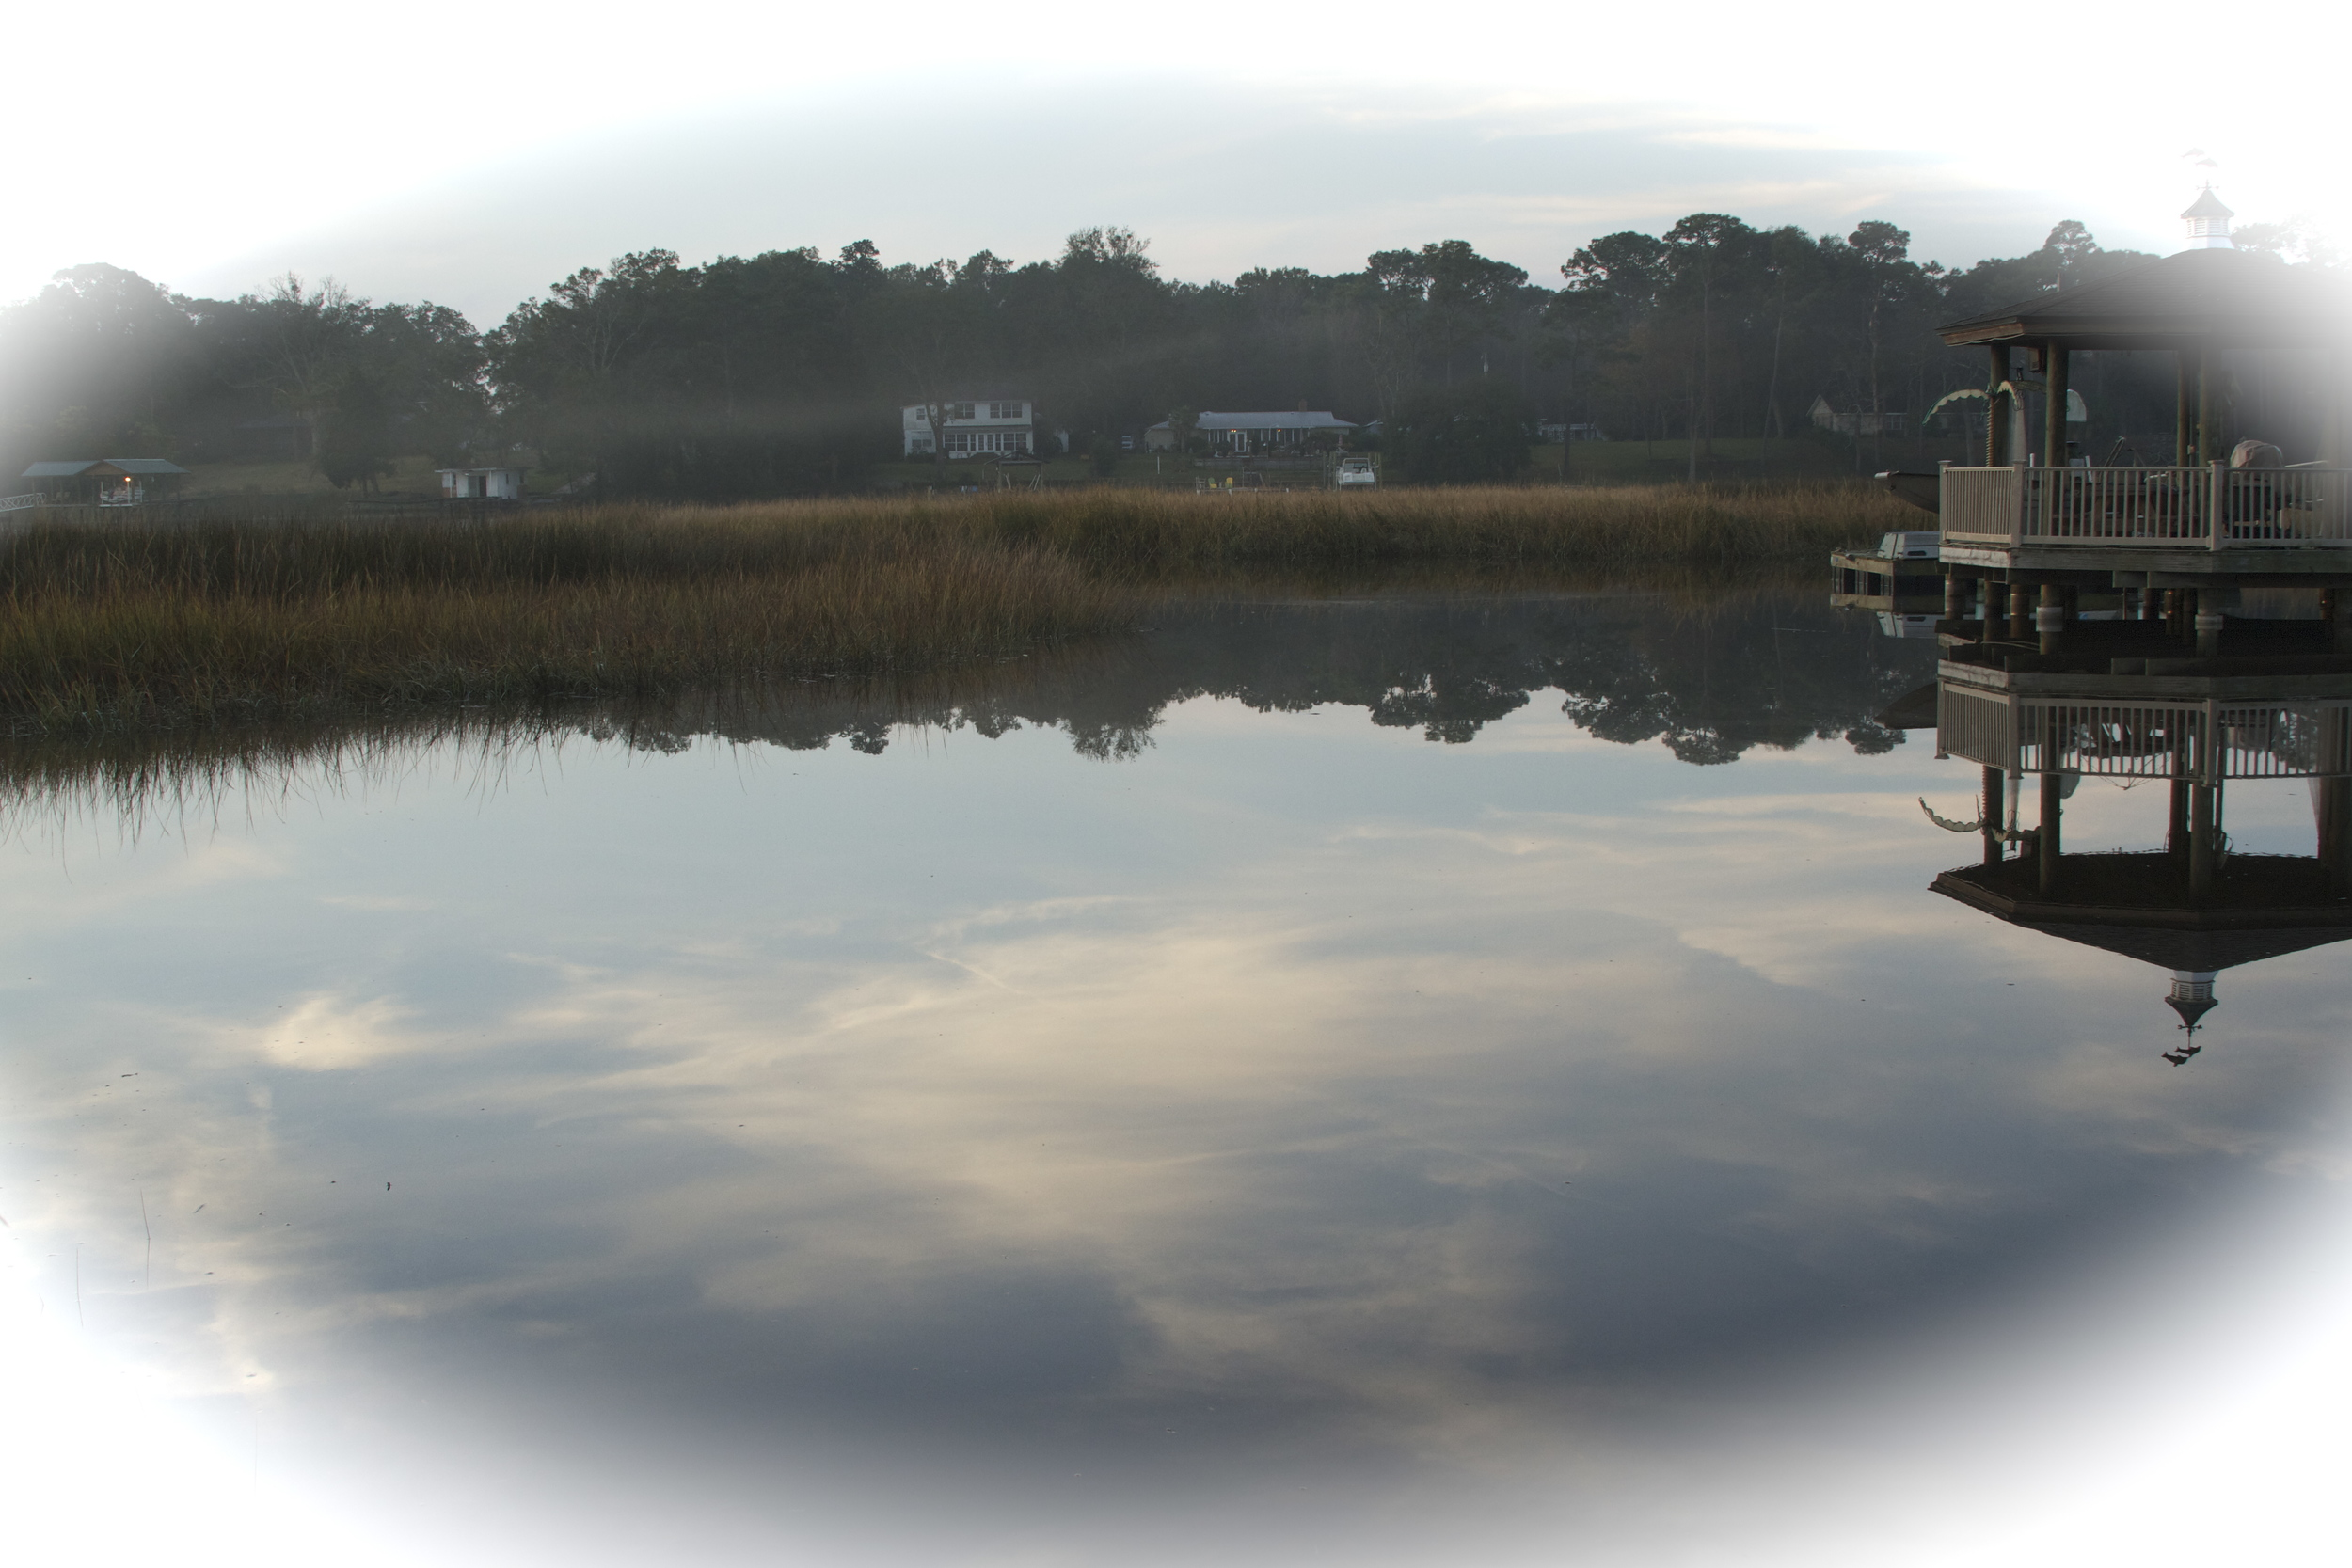 A Wispy mist rises over the marsh while the sky reflects the morning light